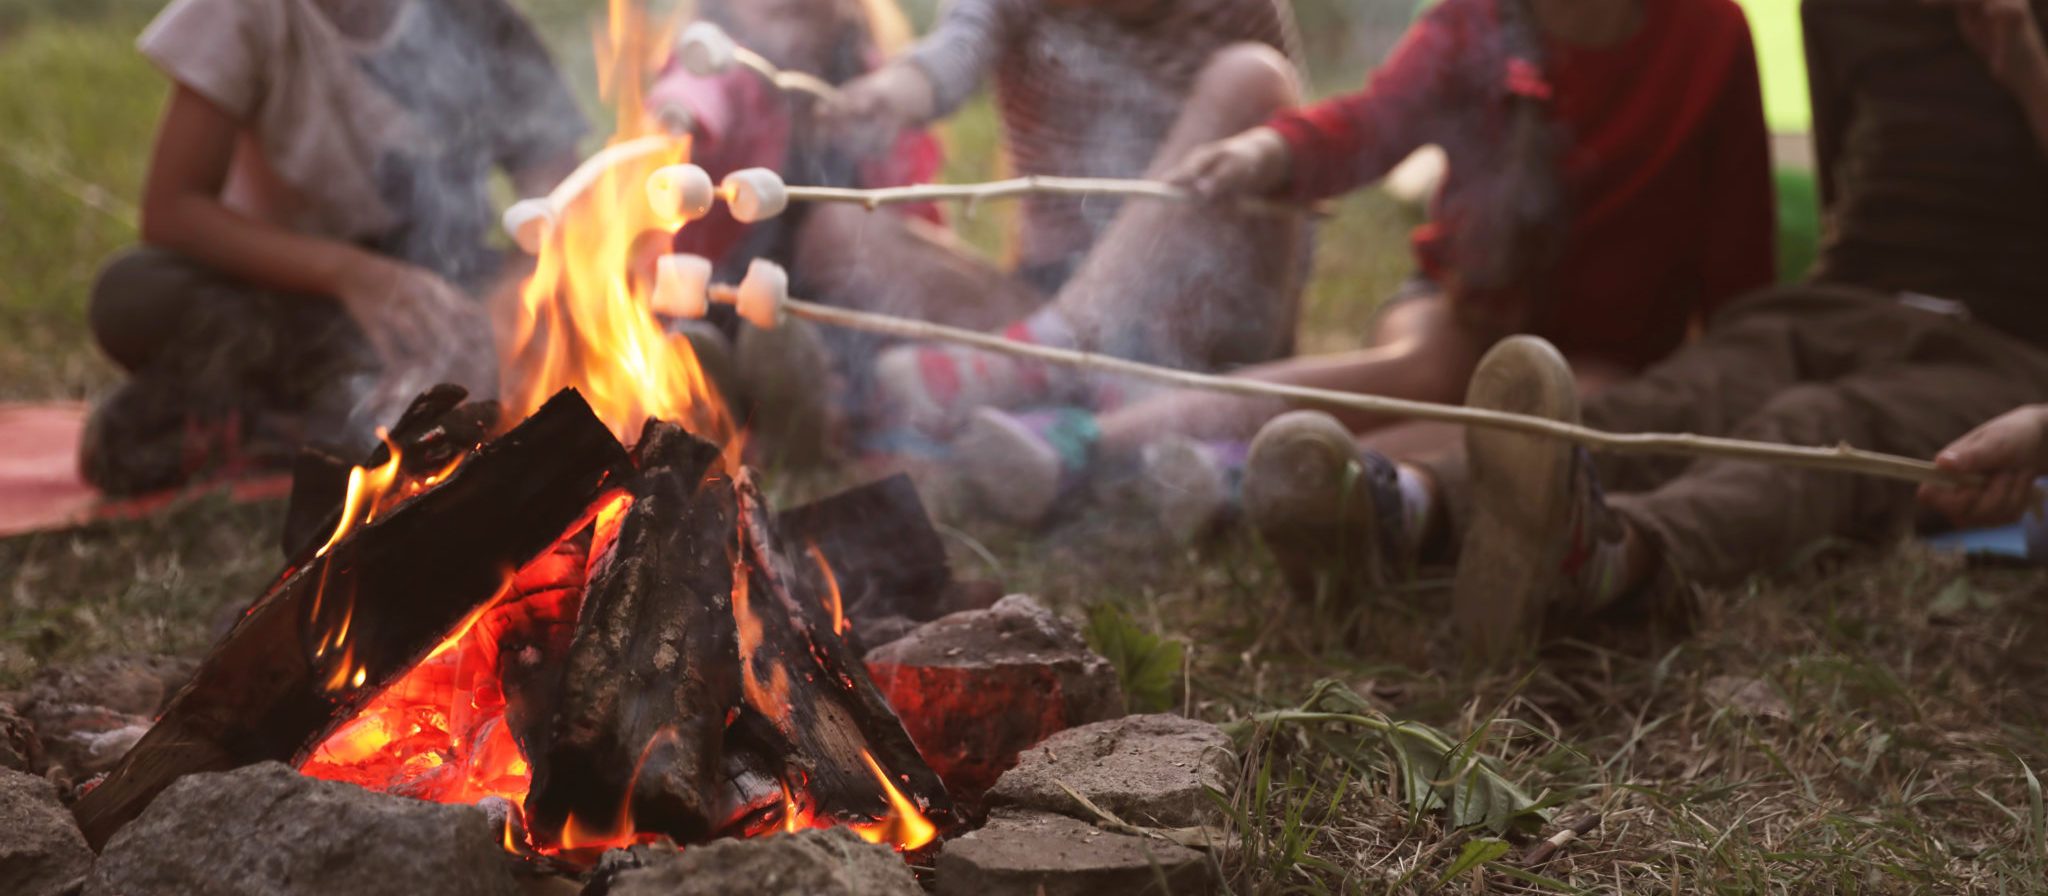 As long as you do not mind loading them up with a little bit of sugar as a special occasion, marshmallows, chocolate and graham crackers are must-have snacks on every camping adventure.